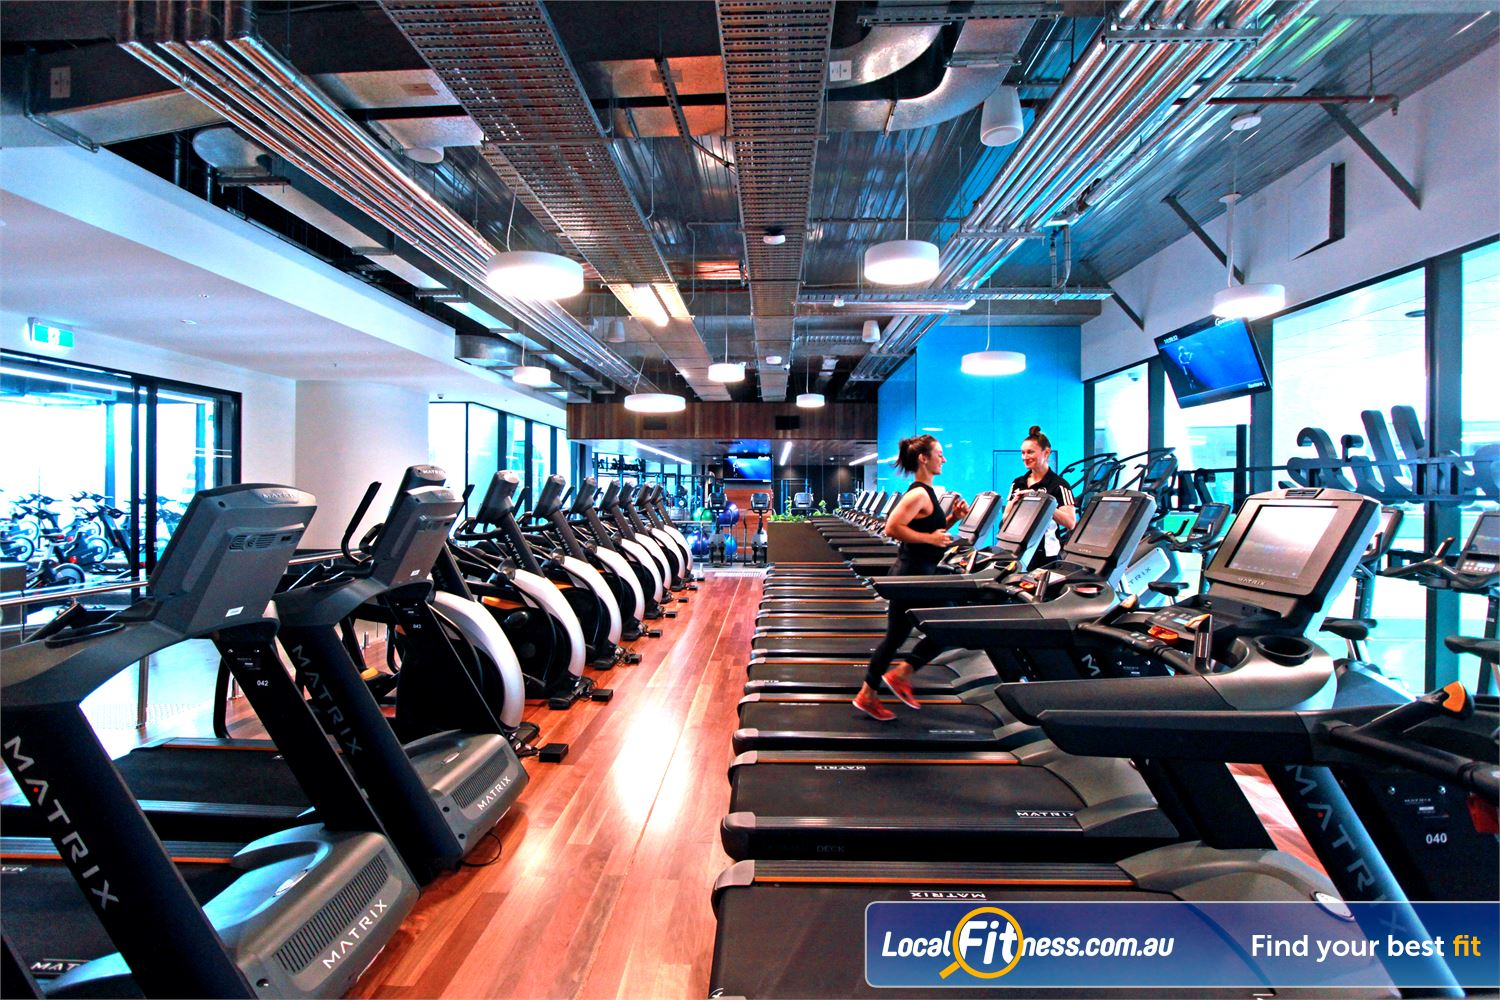 Goodlife Health Clubs Docklands Rows of cardio machines to pump up your cardio.